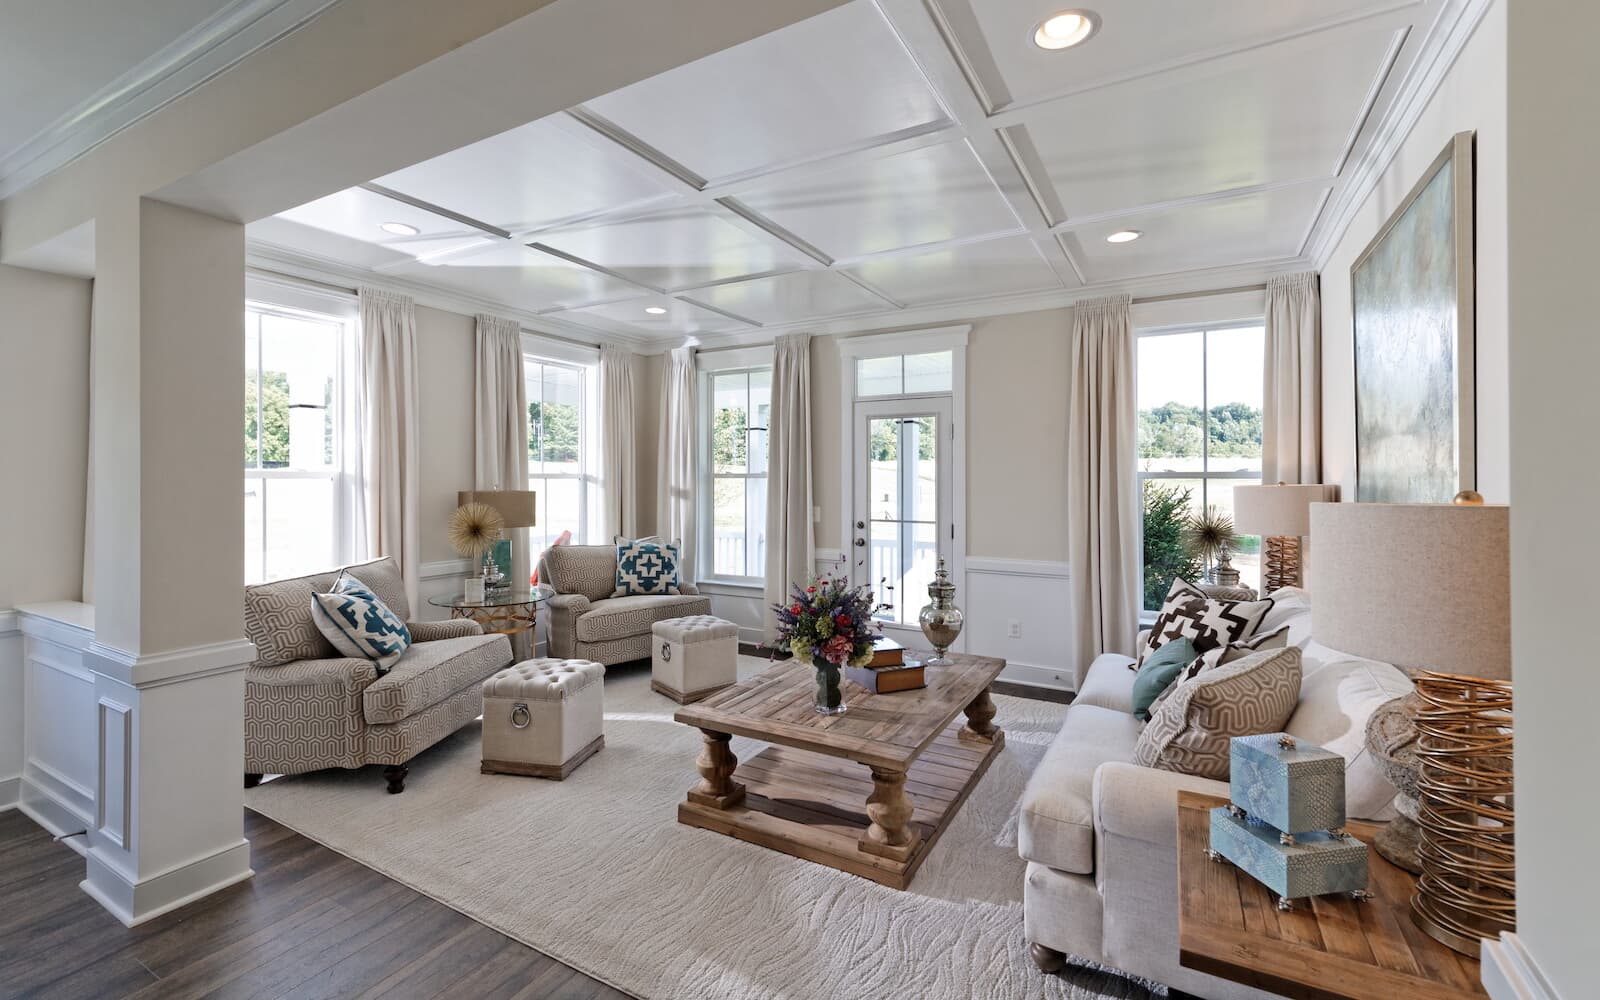 FillmoreII-formal-living-room-single-family-home-leesburg-va-waterford-manor-brookfield-residential